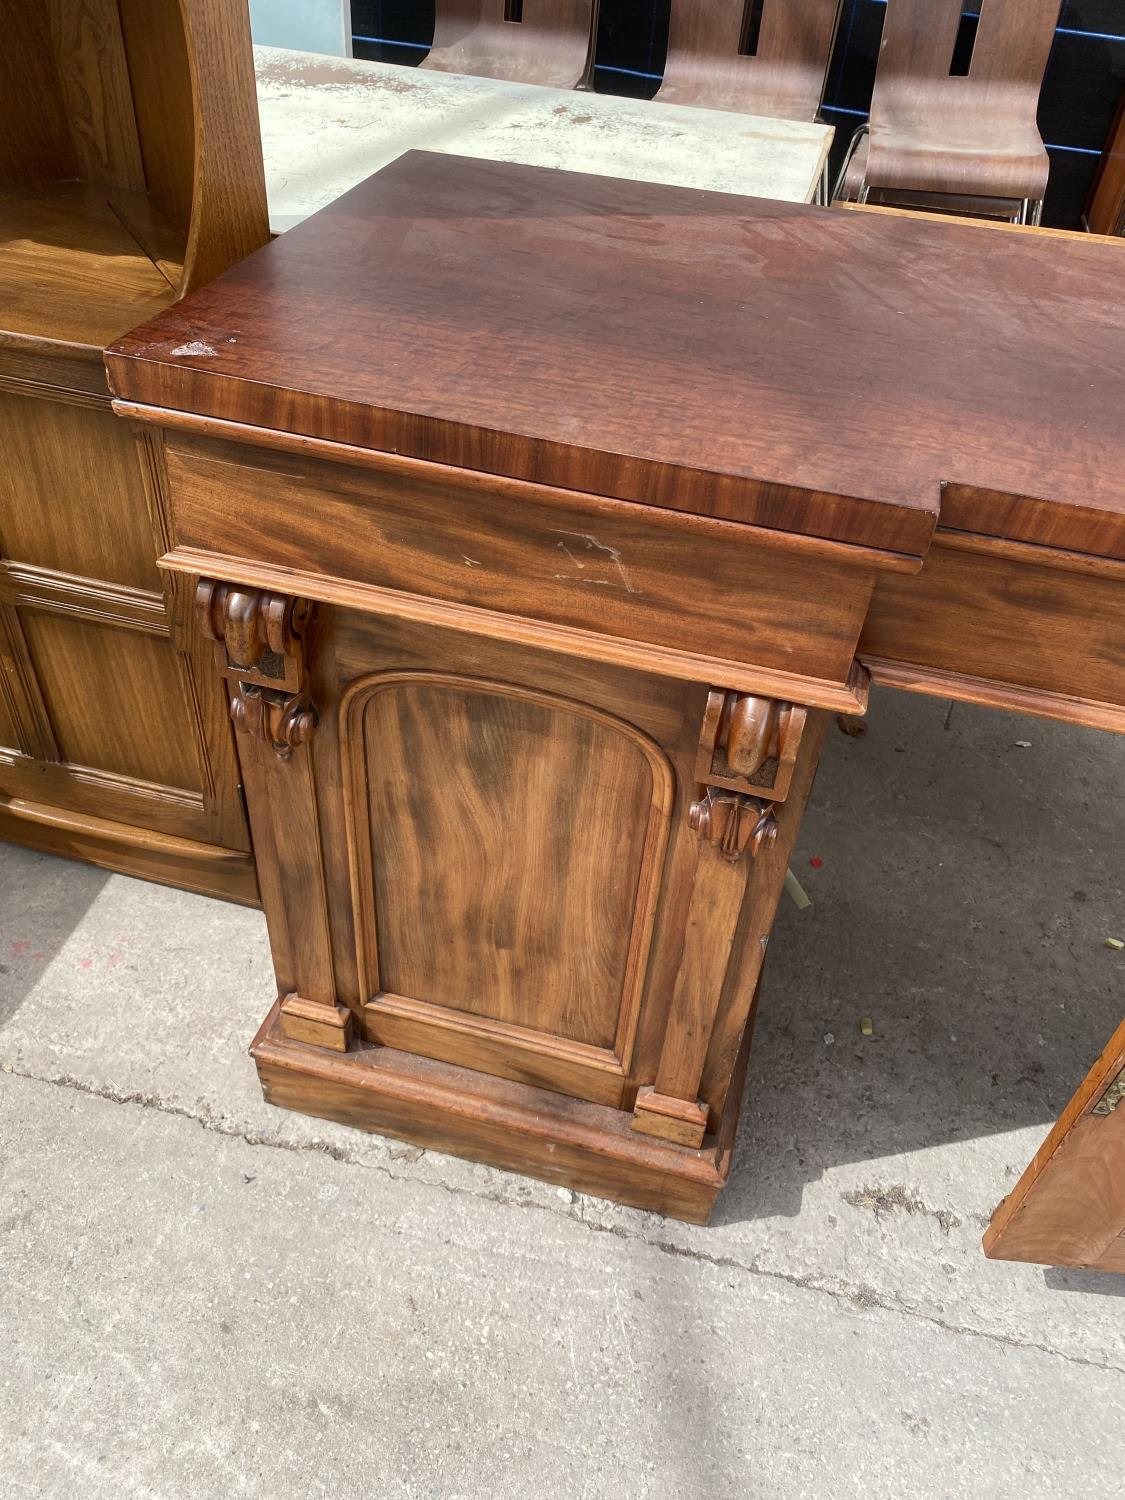 """A VICTORIAN INVERTED BREAKFRONT MAHOGANY DOUBLE PEDESTAL SIDEBOARD, 72"""" WIDE - Image 3 of 5"""